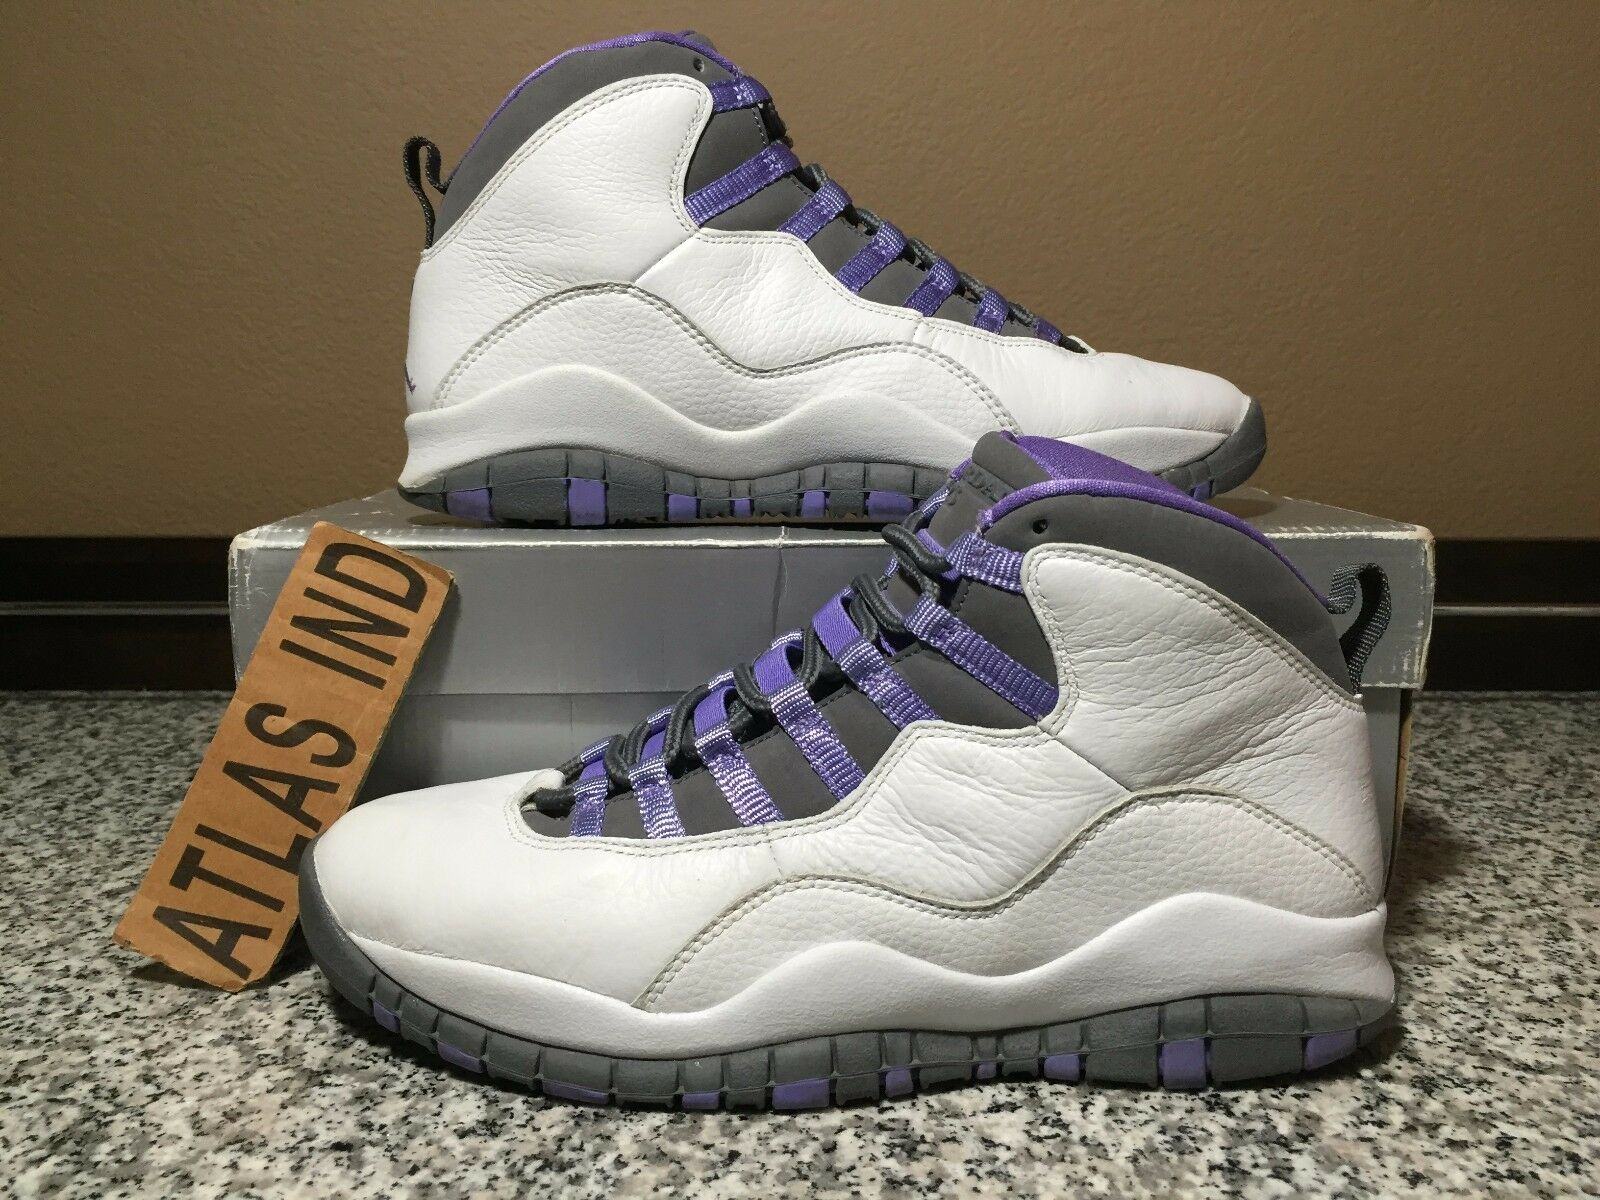 AIR JORDAN 10 RETRO Violet White Purple Nike X 1 3 4 5 6 11 12 OVO DB 2018 9 7.5